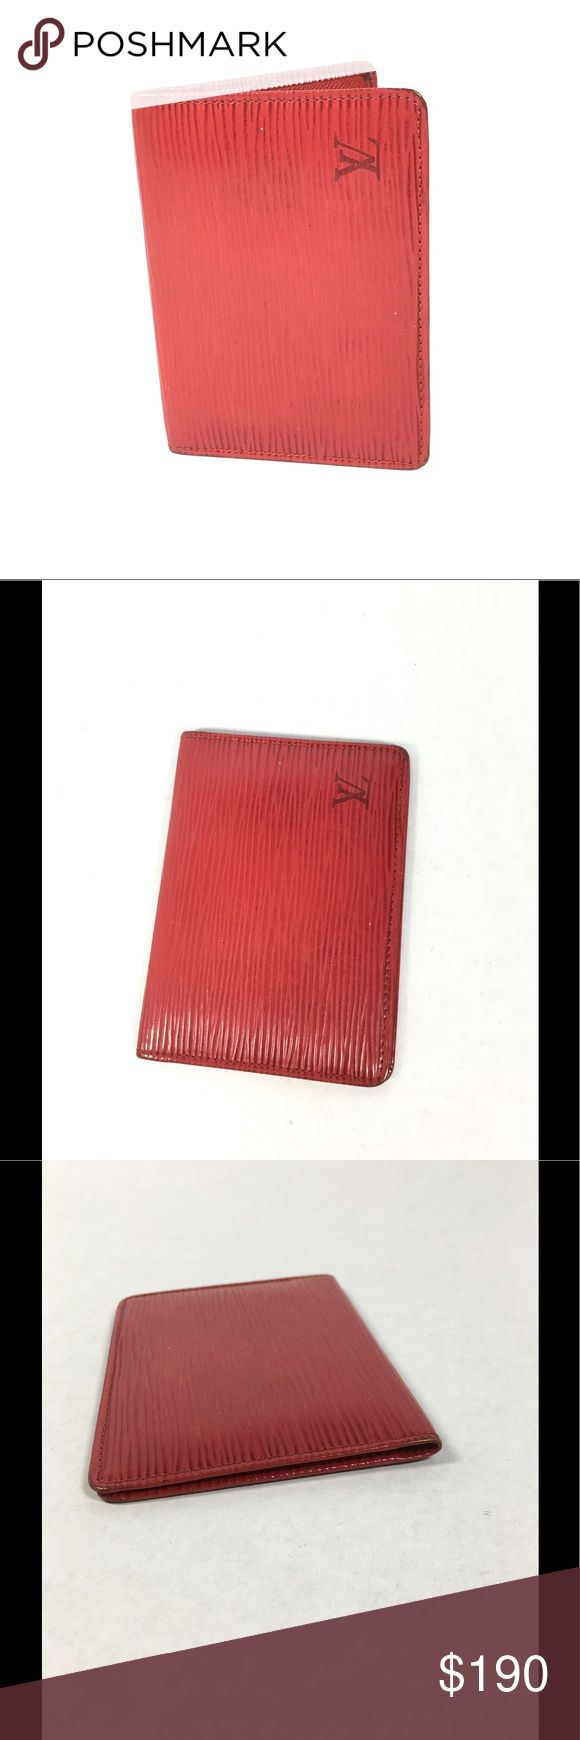 Authentic Louis Vuitton Epi Leather Card Holder No lowballing, no trade. Authentic Louis Vuitton Epi Leather Red Card Holder    Louis Vuitton Paris. Made in France    Date code: SP 1927    Gently used condition    Rub marks and scratches on the exterior. Light rubbing on the corners and edges.  Interior shows minor rub marks. Plastic parts show small scratches, dirt spots and light stains. Louis Vuitton Bags Wallets